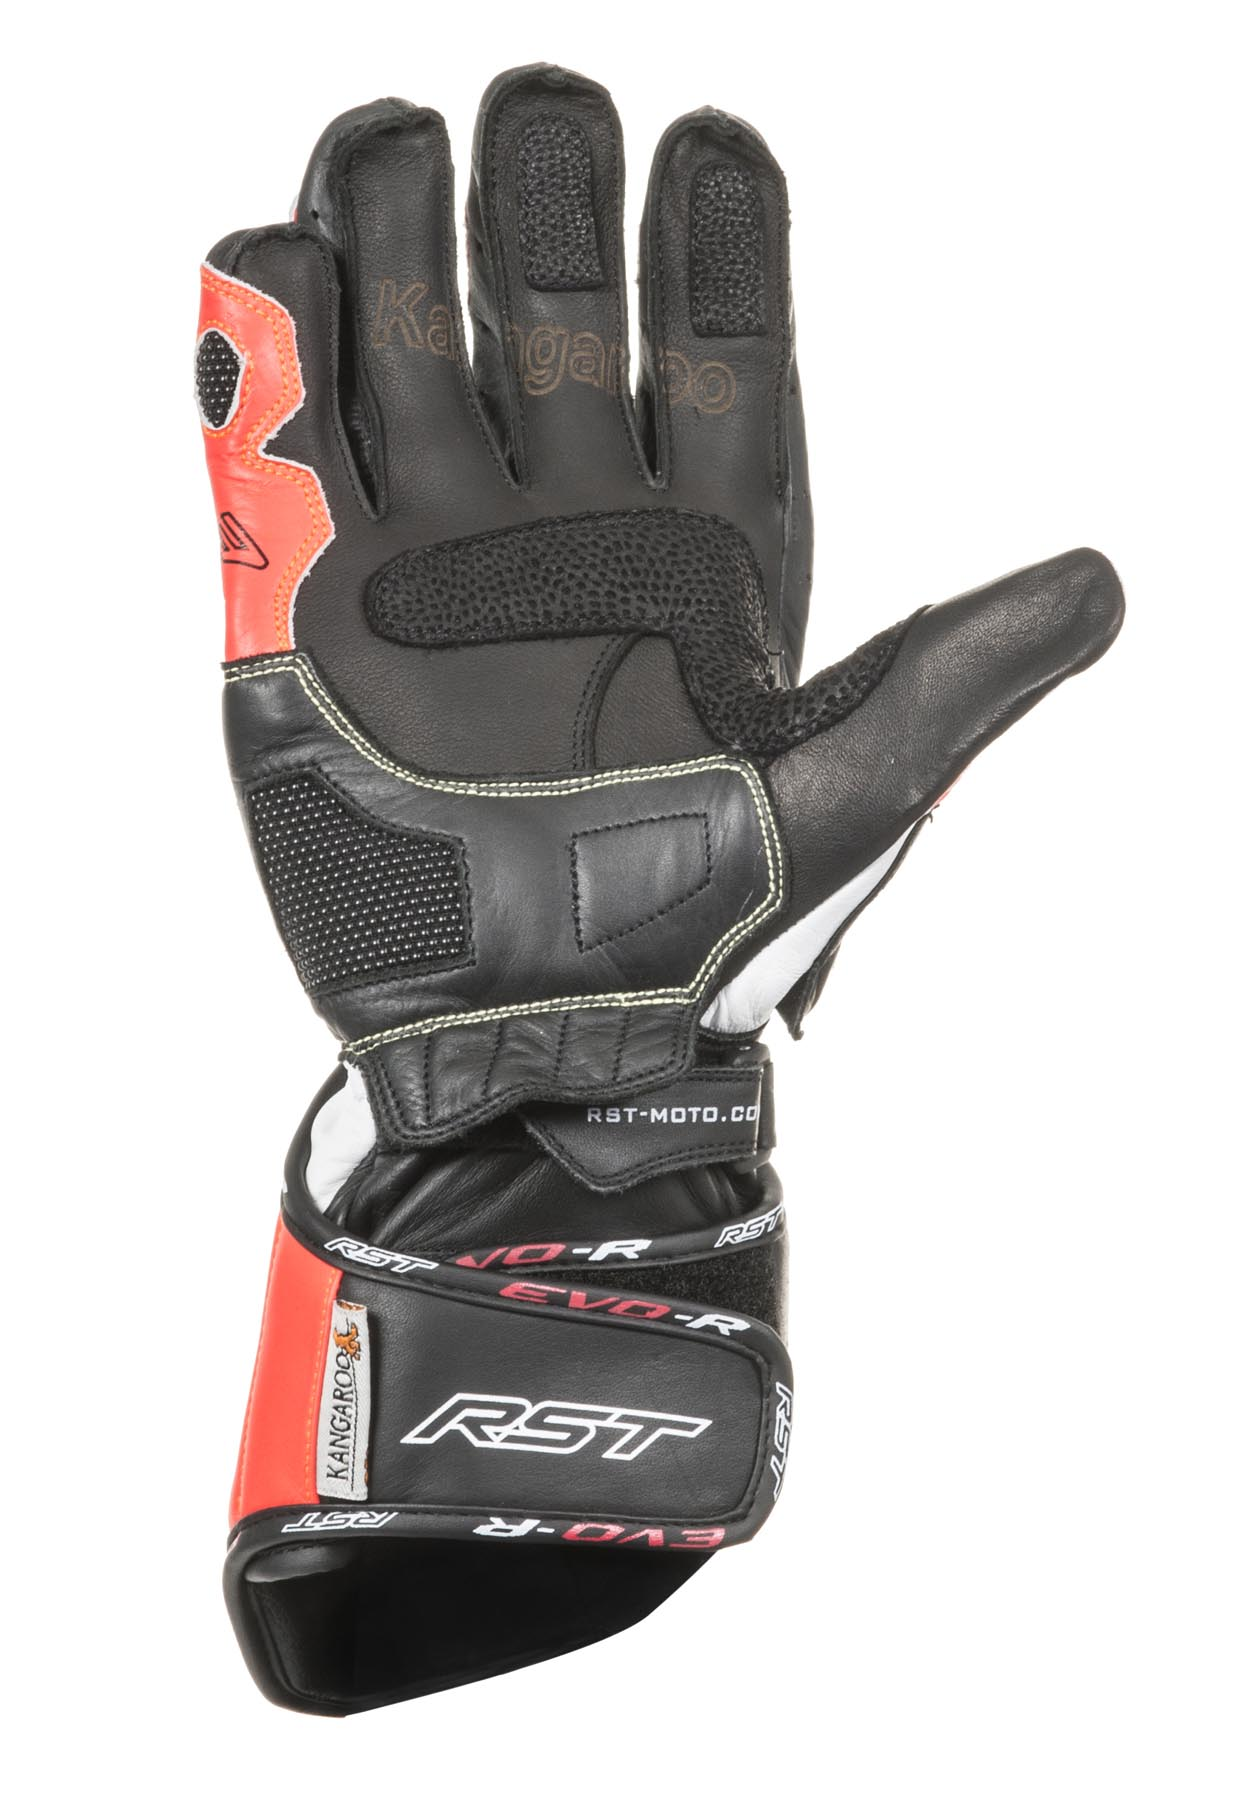 TRACTECH EVO R GLOVE FRONT OF HAND